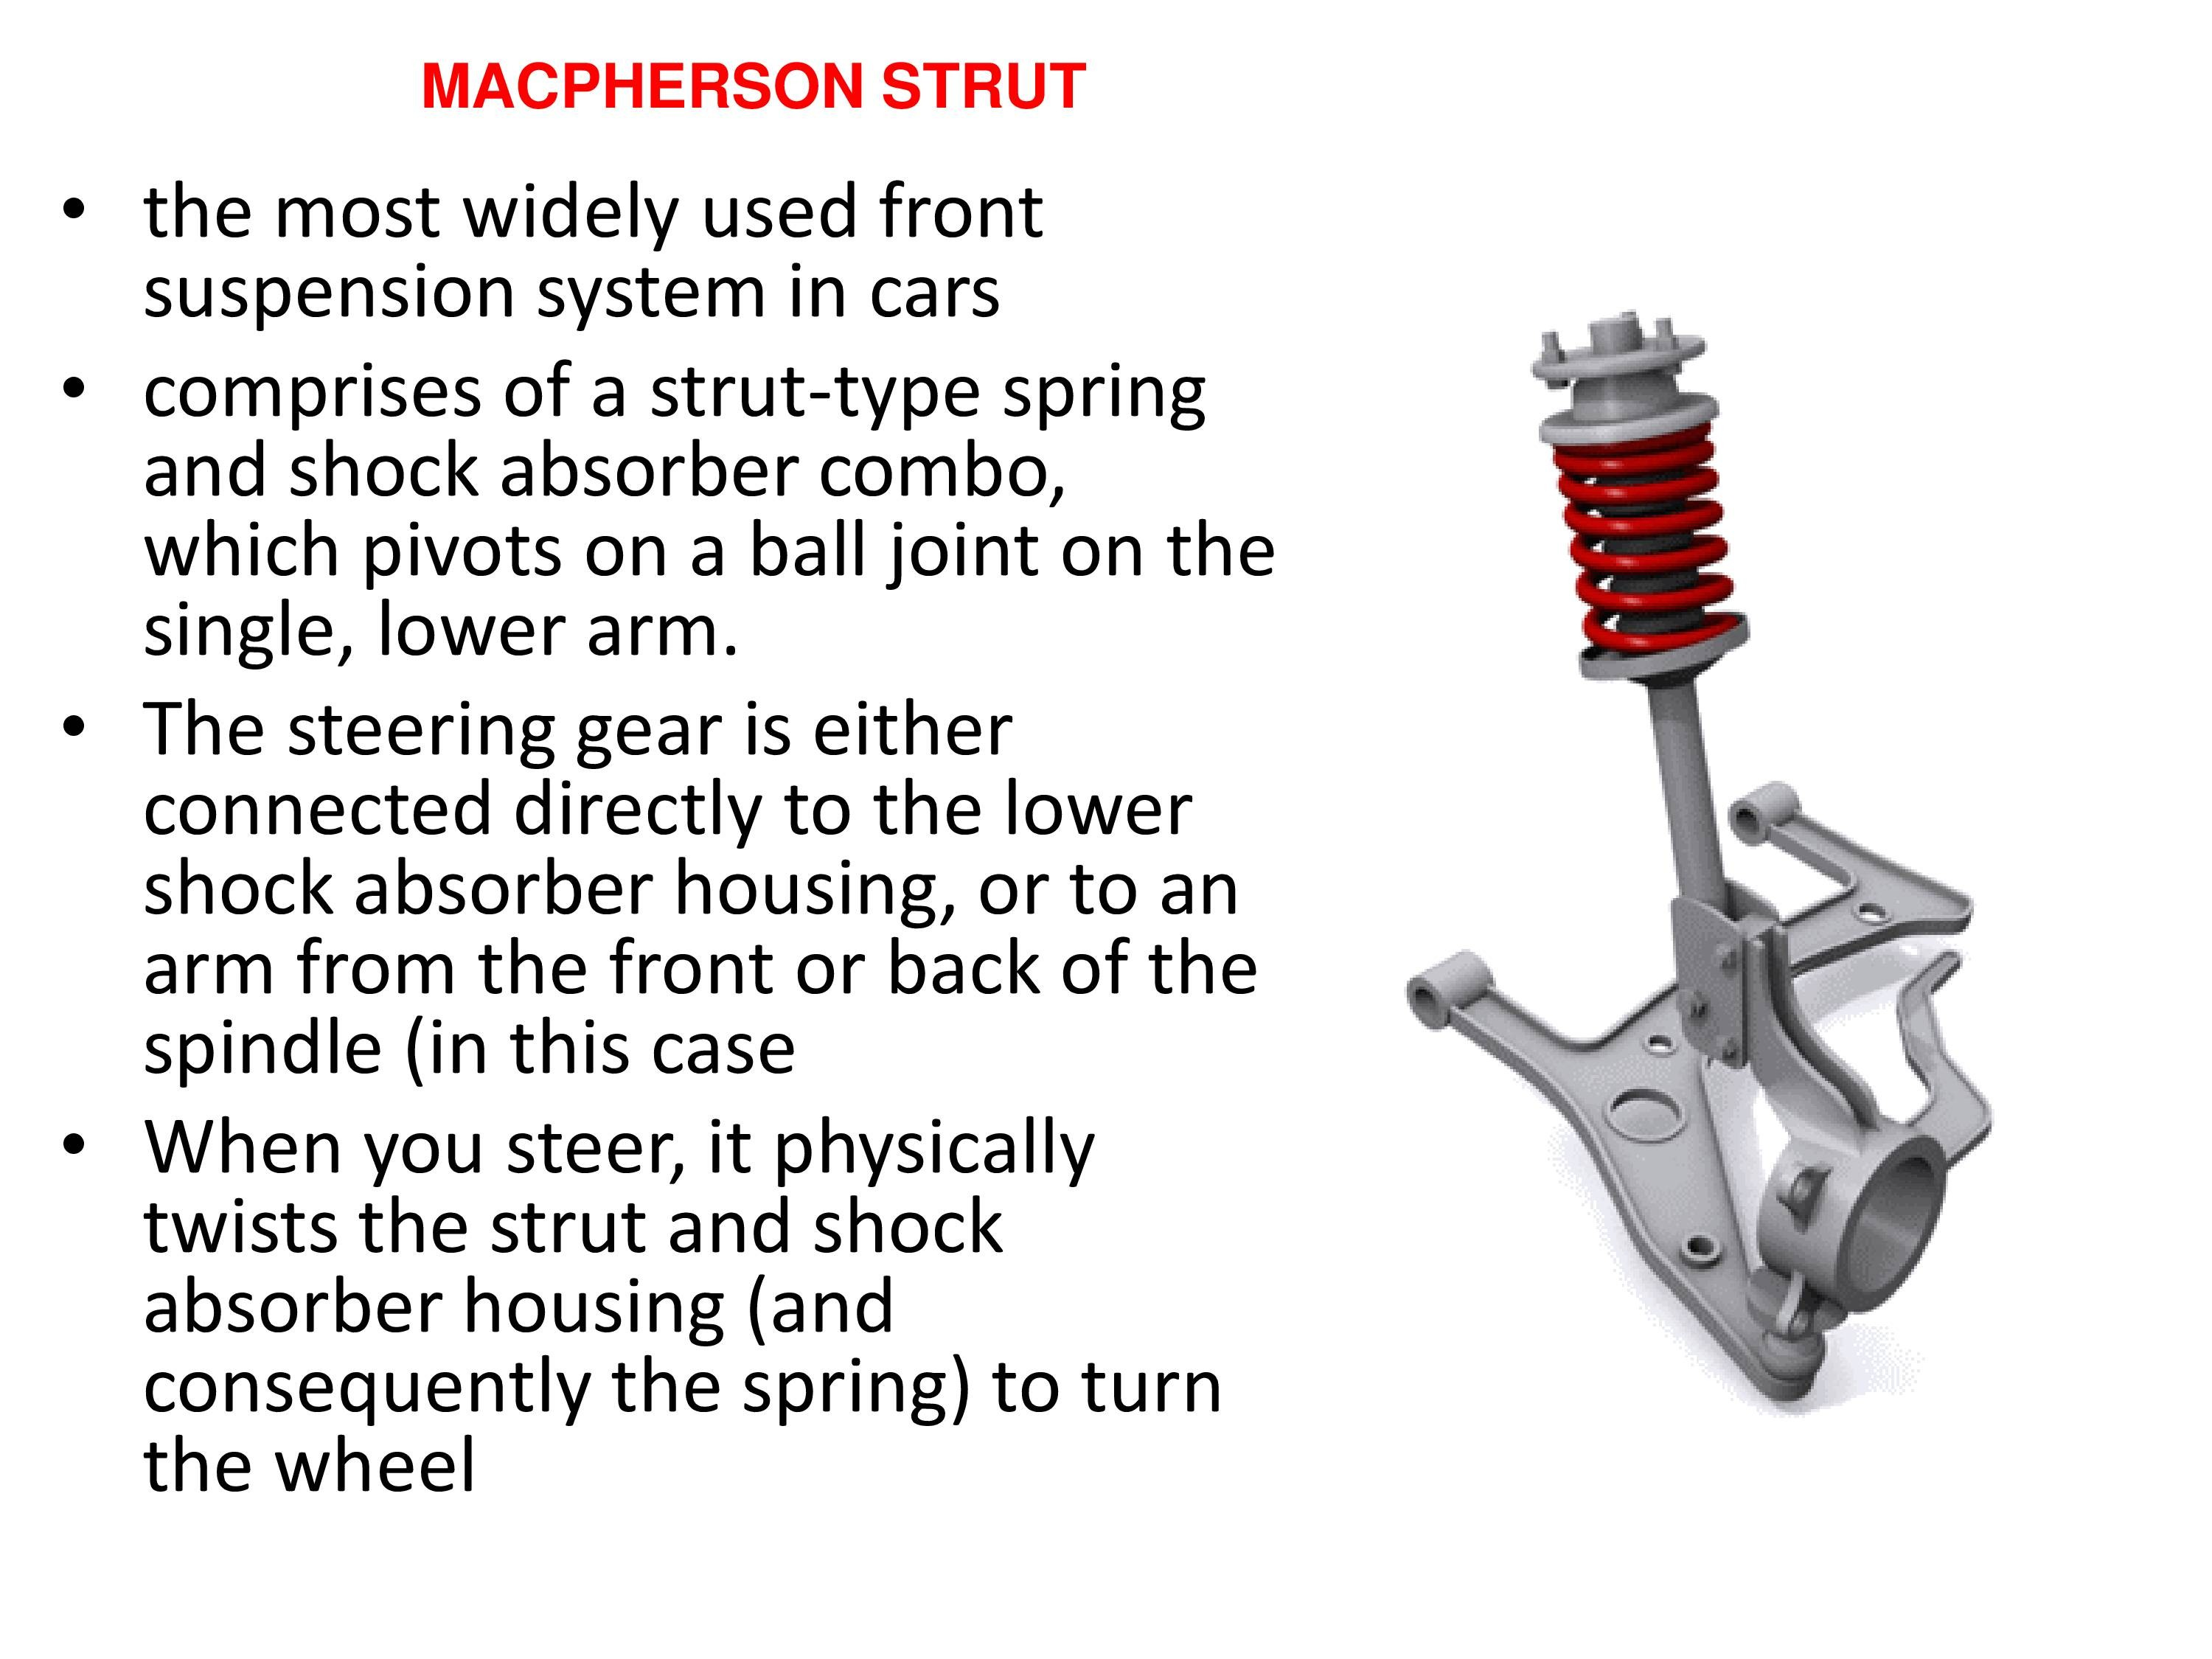 Macpherson Suspension Diagram Suspension System In A Car Powerpoint Slides Of Macpherson Suspension Diagram